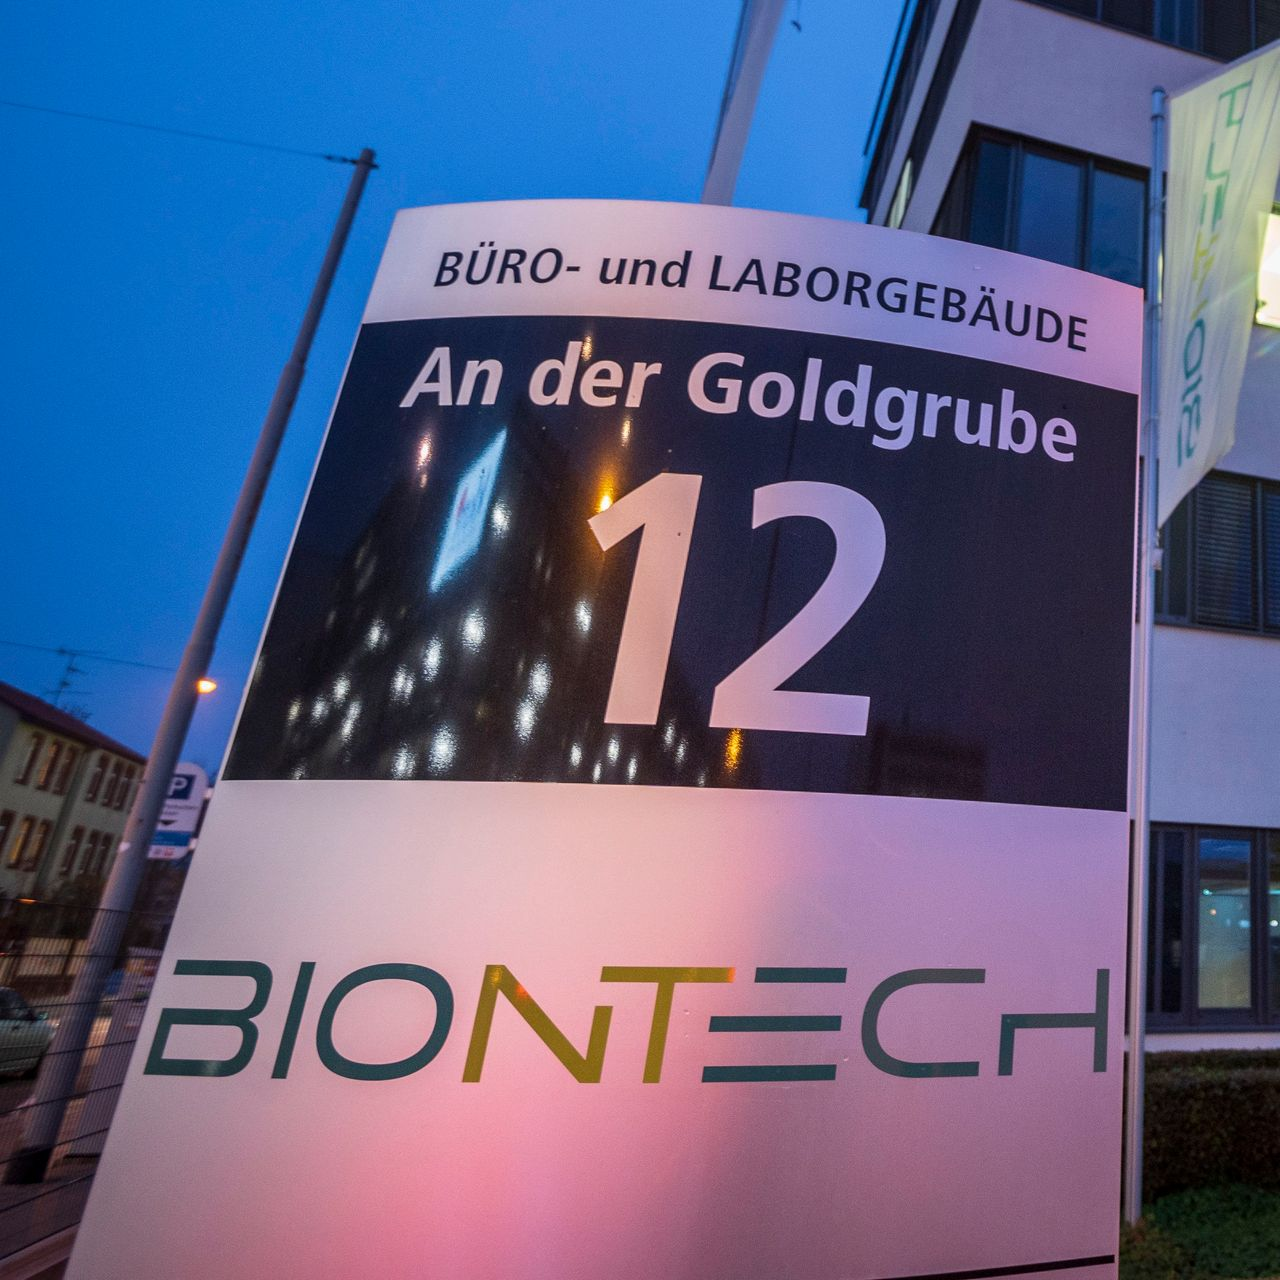 5 Things About Biontech And The Couple Behind The Covid 19 Vaccine With Pfizer Marketwatch